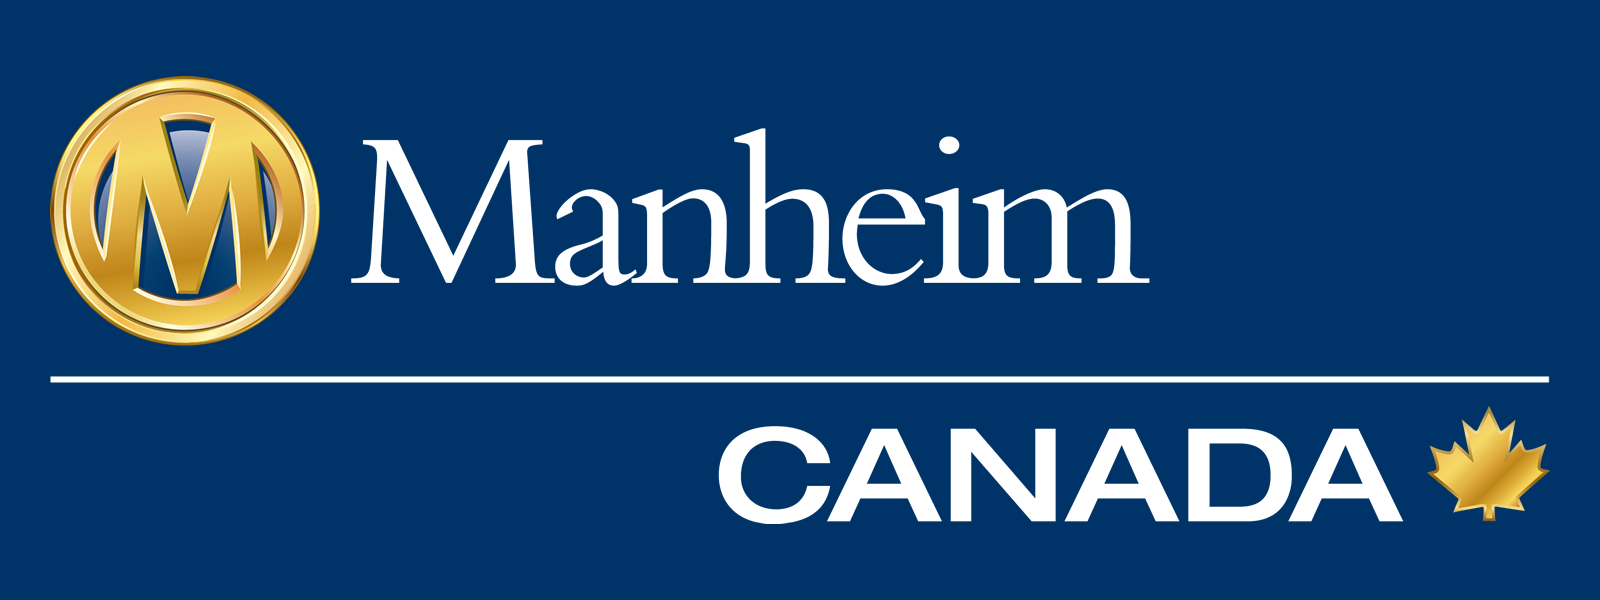 Kingfisher completes phase one development of new Manheim Canada website